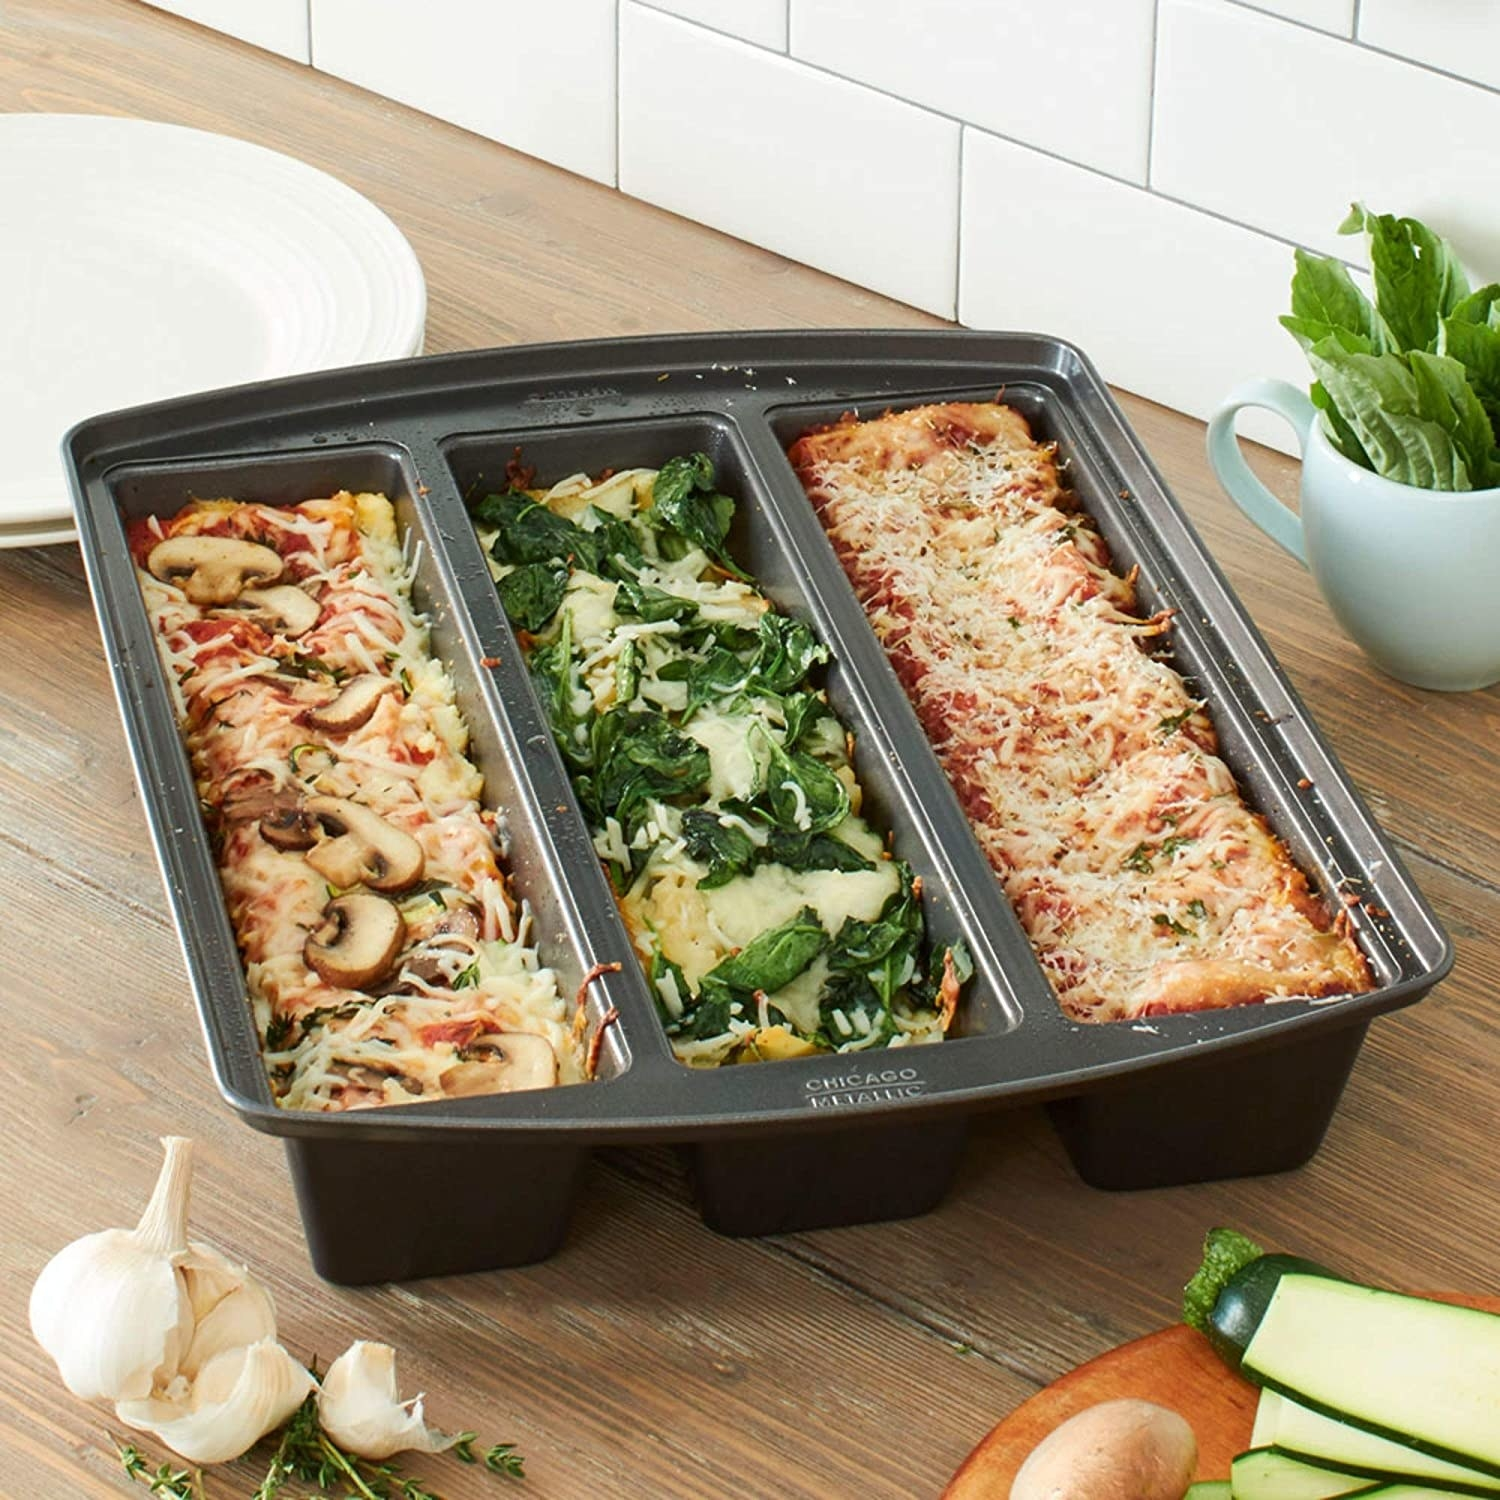 The pan with three rectangles of cooked lasagna with different ingredients in it